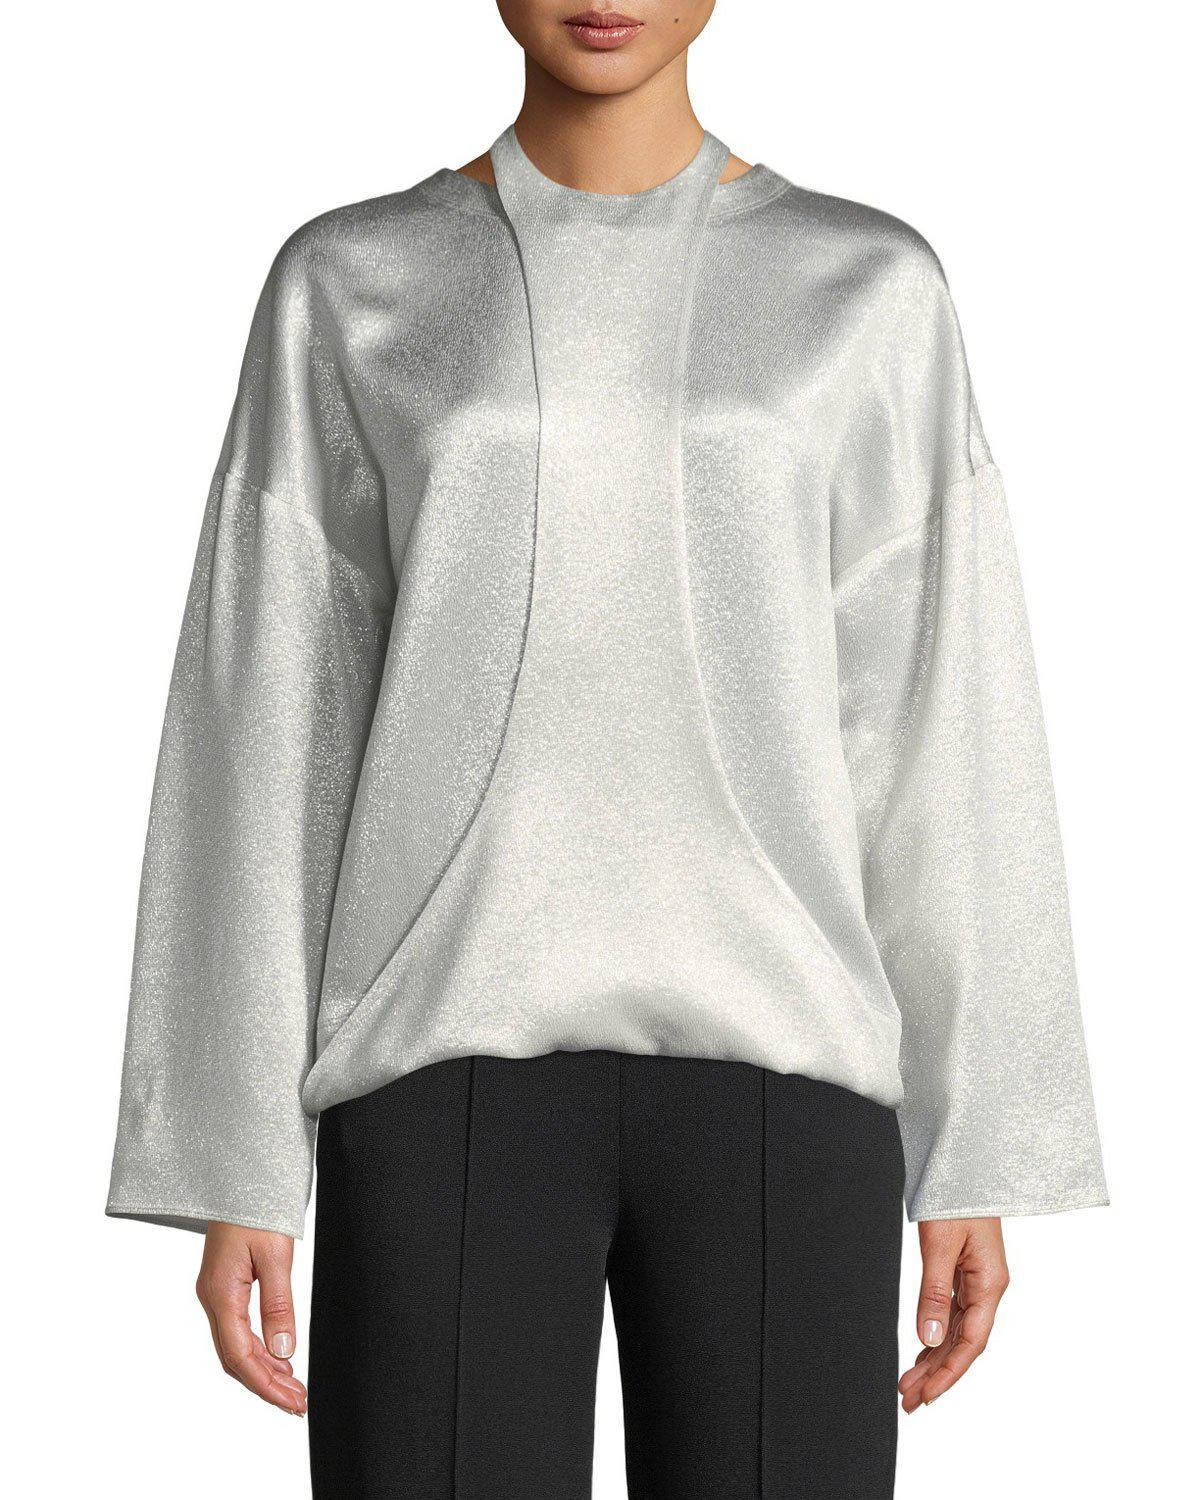 Hammered lamé blouse Valentino Latest Collections KJ2ltxP